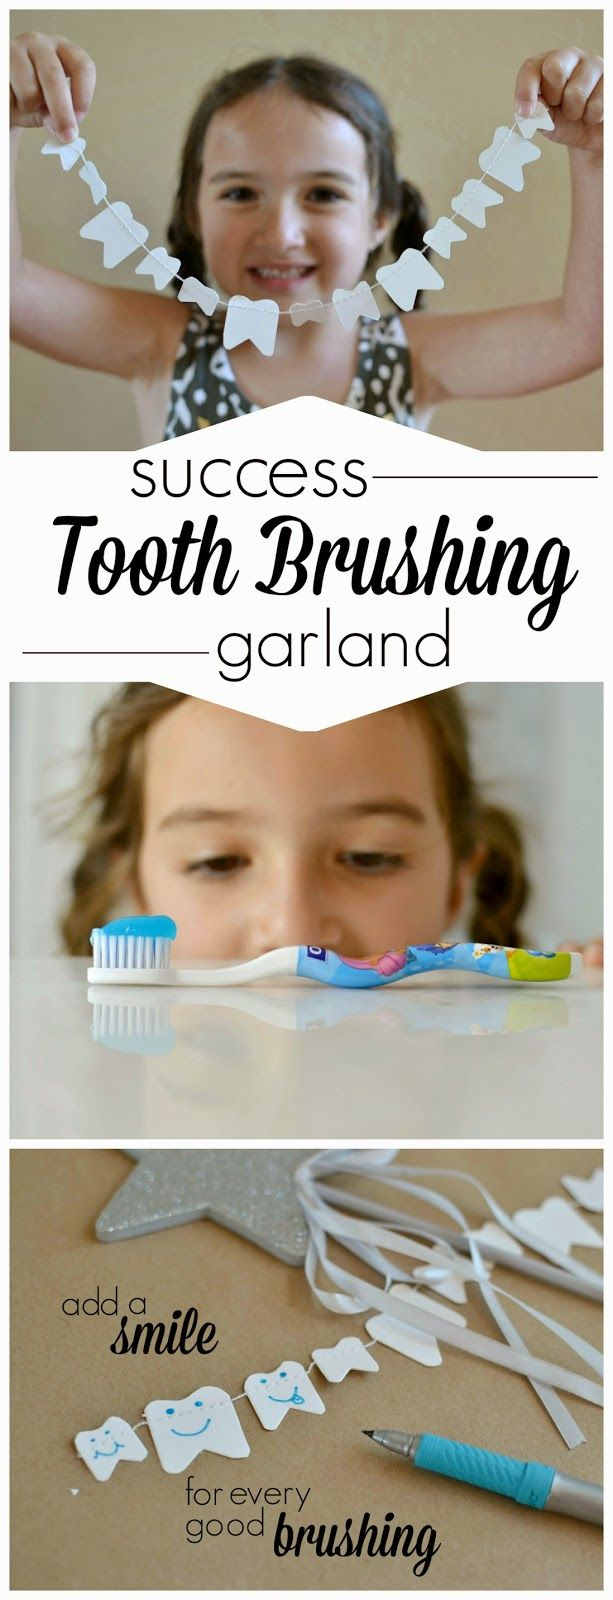 Try this parenting hack! Instead of a typical tooth brushing reward chart let them add a smile for every good brushing.